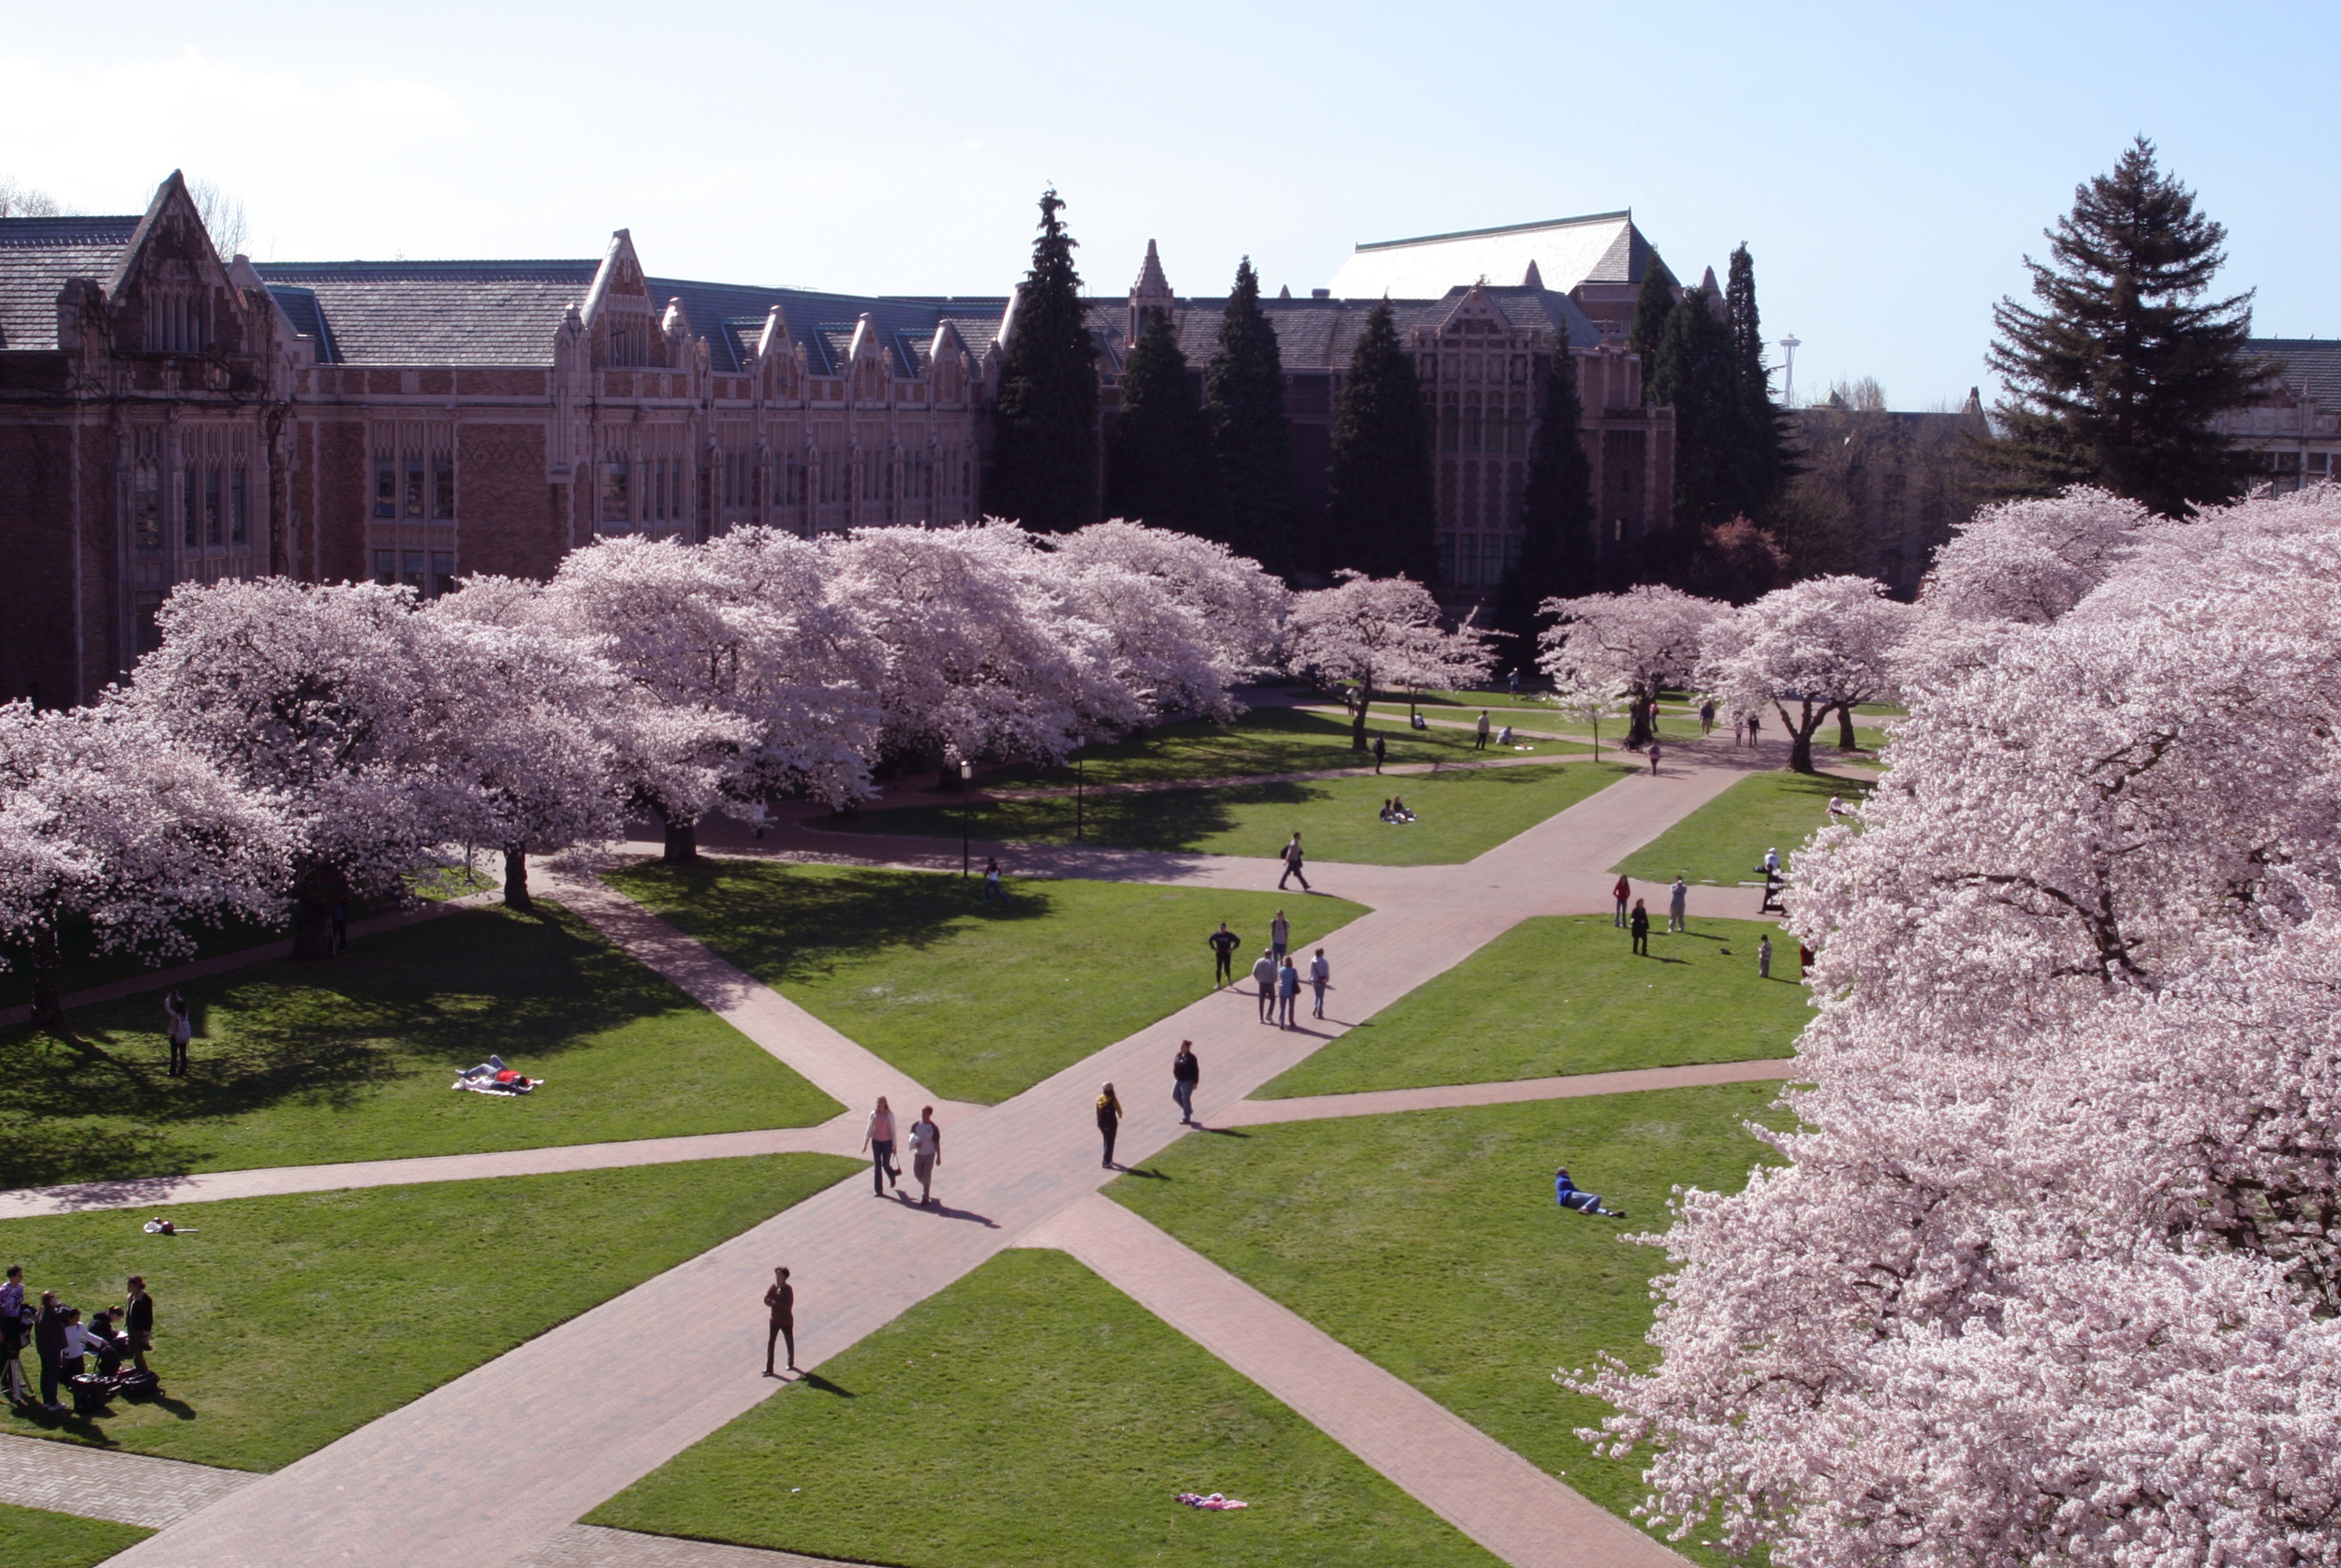 The Quad view from the windows of School of Art building at the University of Washington. One of the most beautiful spots on campus, especially in March, when all the cherry trees are in bloom. I feel very fortunate and proud to have been a part of this place.